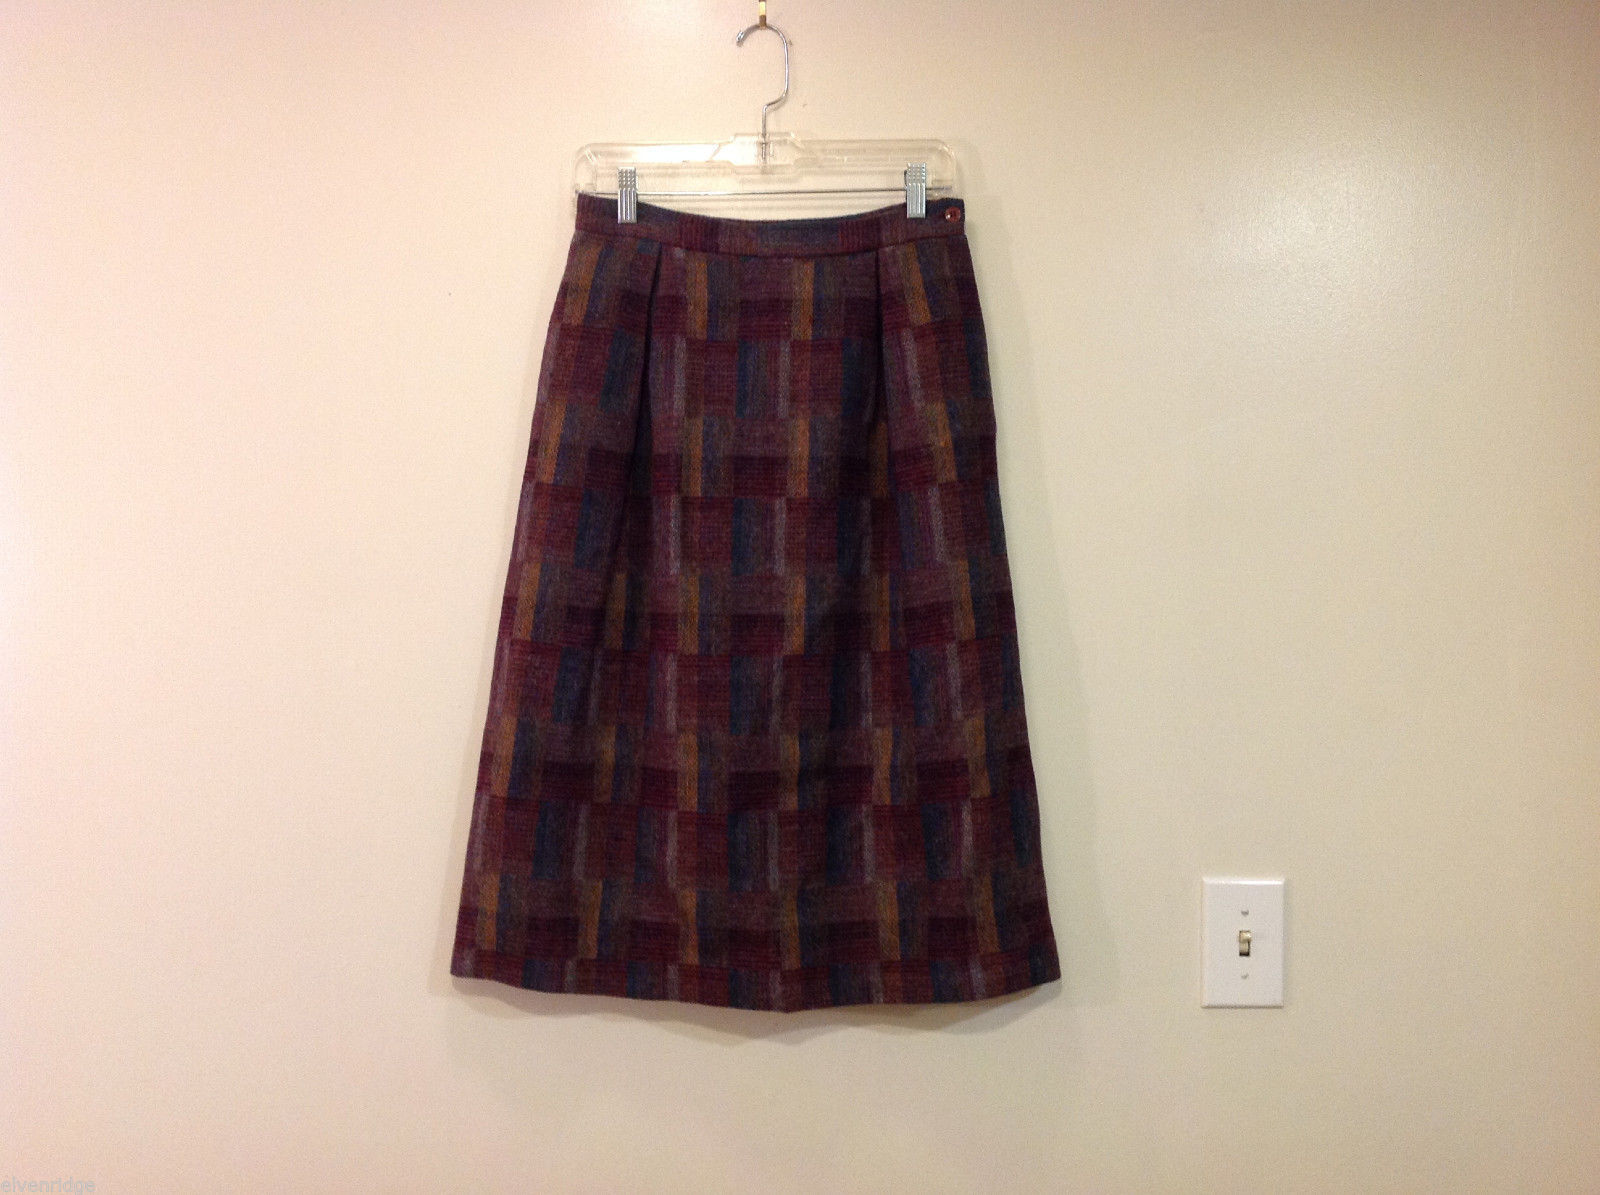 Hunter Sportswear 100% Wool Plaid Skirt Front Pleats Dark Colors, Size 10